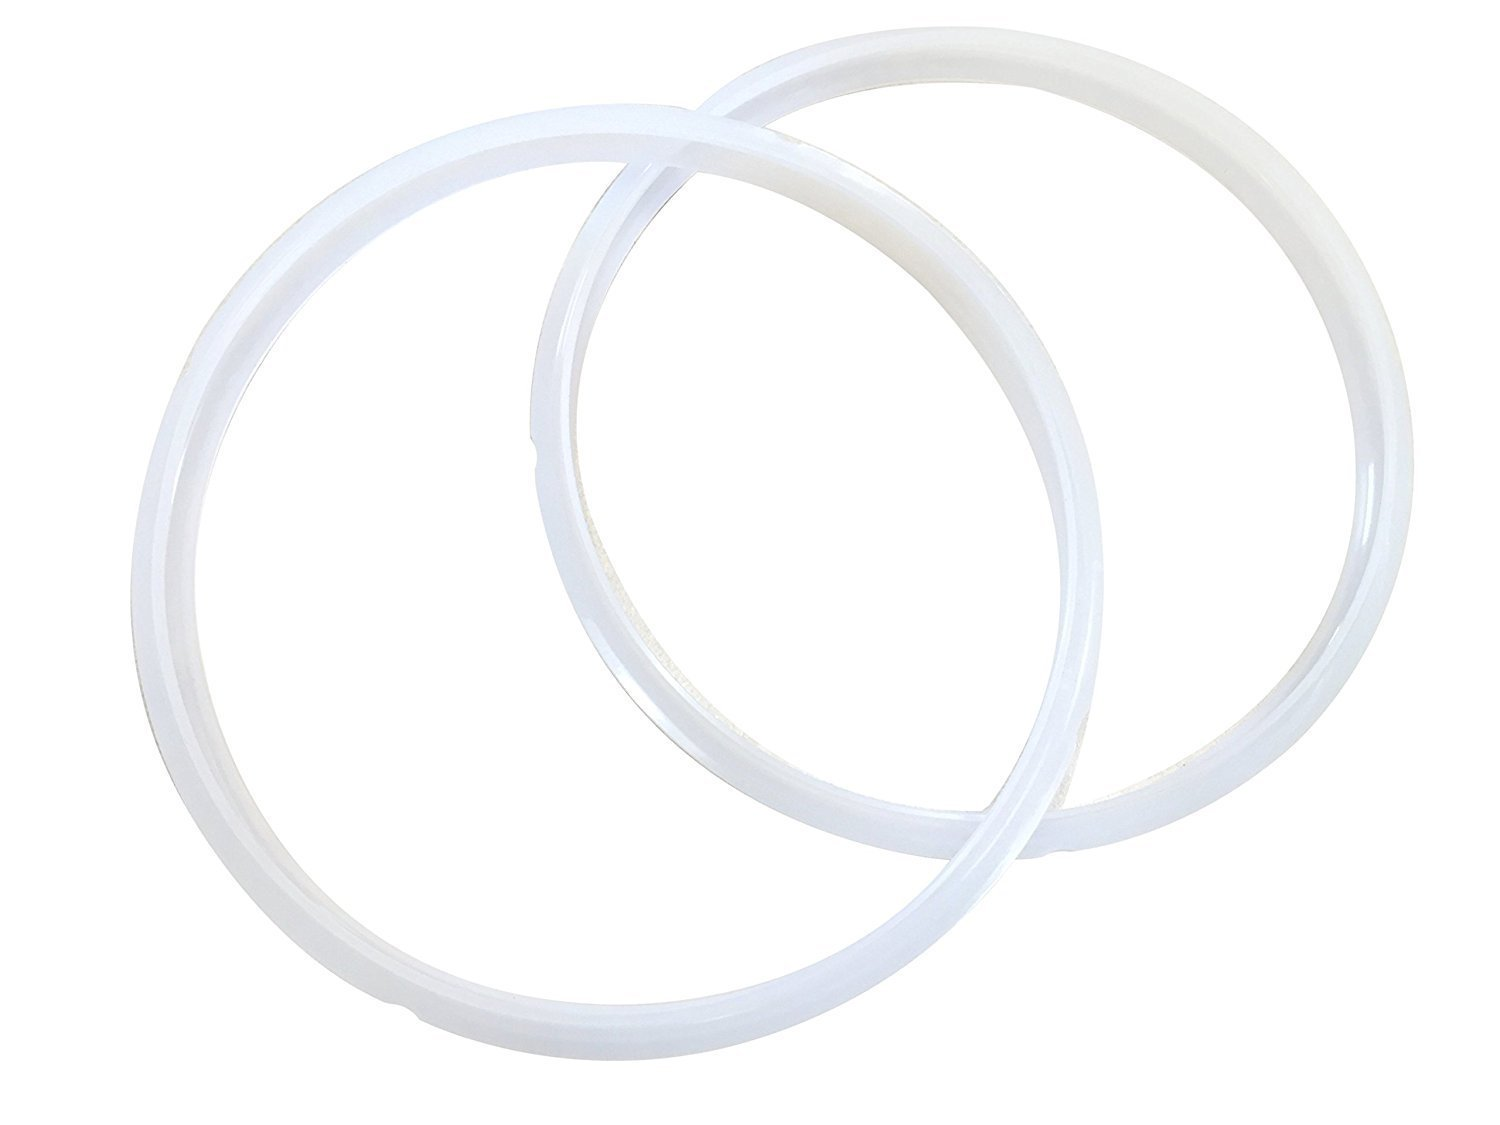 TWIN PACK: Two Rubber Gaskets For Power Pressure Cookers (All 8 Quart Models) by GJS Gourmet (Image #2)